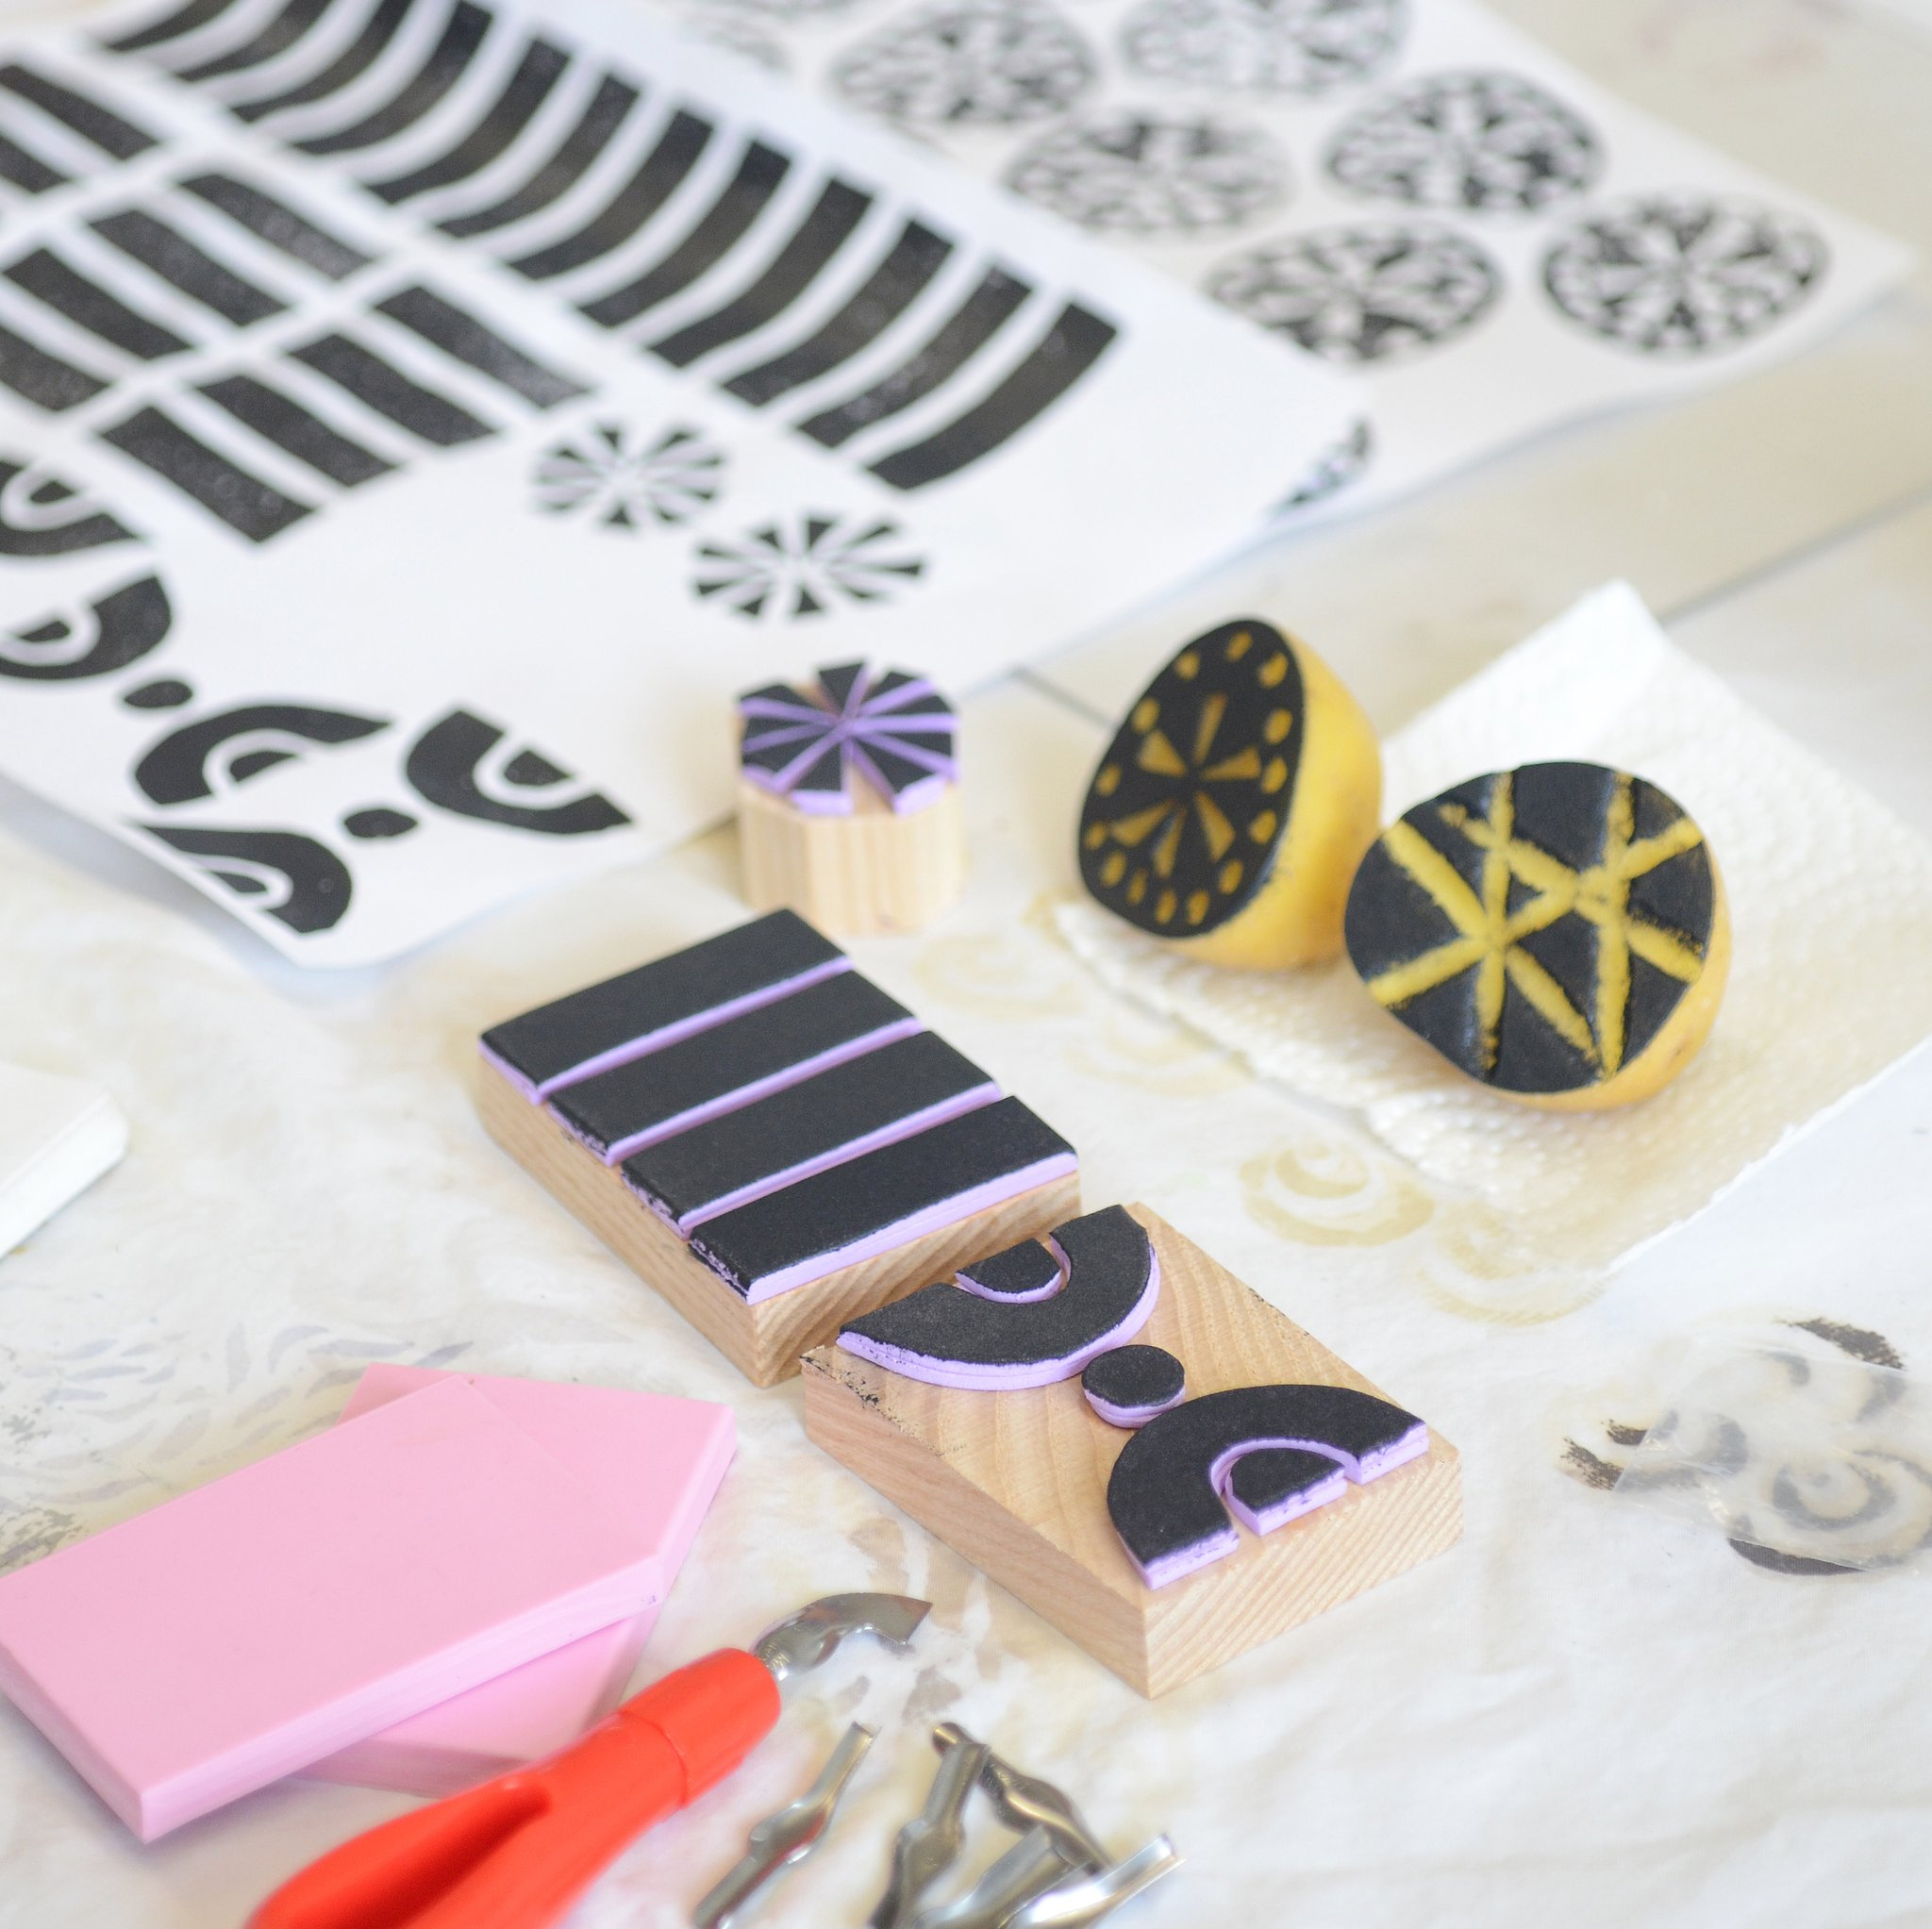 AFTERNOON WORKSHOP: Surface Design Through Block-Printing - Saturday, March 28, 2020 | 1 - 5pm, $125Natalie Gerber Studio & WorkshopscSPACE King Edward, 205 1721 - 29 Ave SWNatalieGerber.caCreate and print your own designs with me, an artist and surface designer. In this class you'll explore multiple block-printing techniques to create your own patterns on fabric and paper. You will use potatoes, rubber and foam to create your own unique stamps. This workshop appeals to beginner and experienced designers with a focus on low-tech processes that you can continue experimenting with at home. Take home your custom-printed stationary, tote bag and your handmade stamps.photo credit: Natalie Gerber